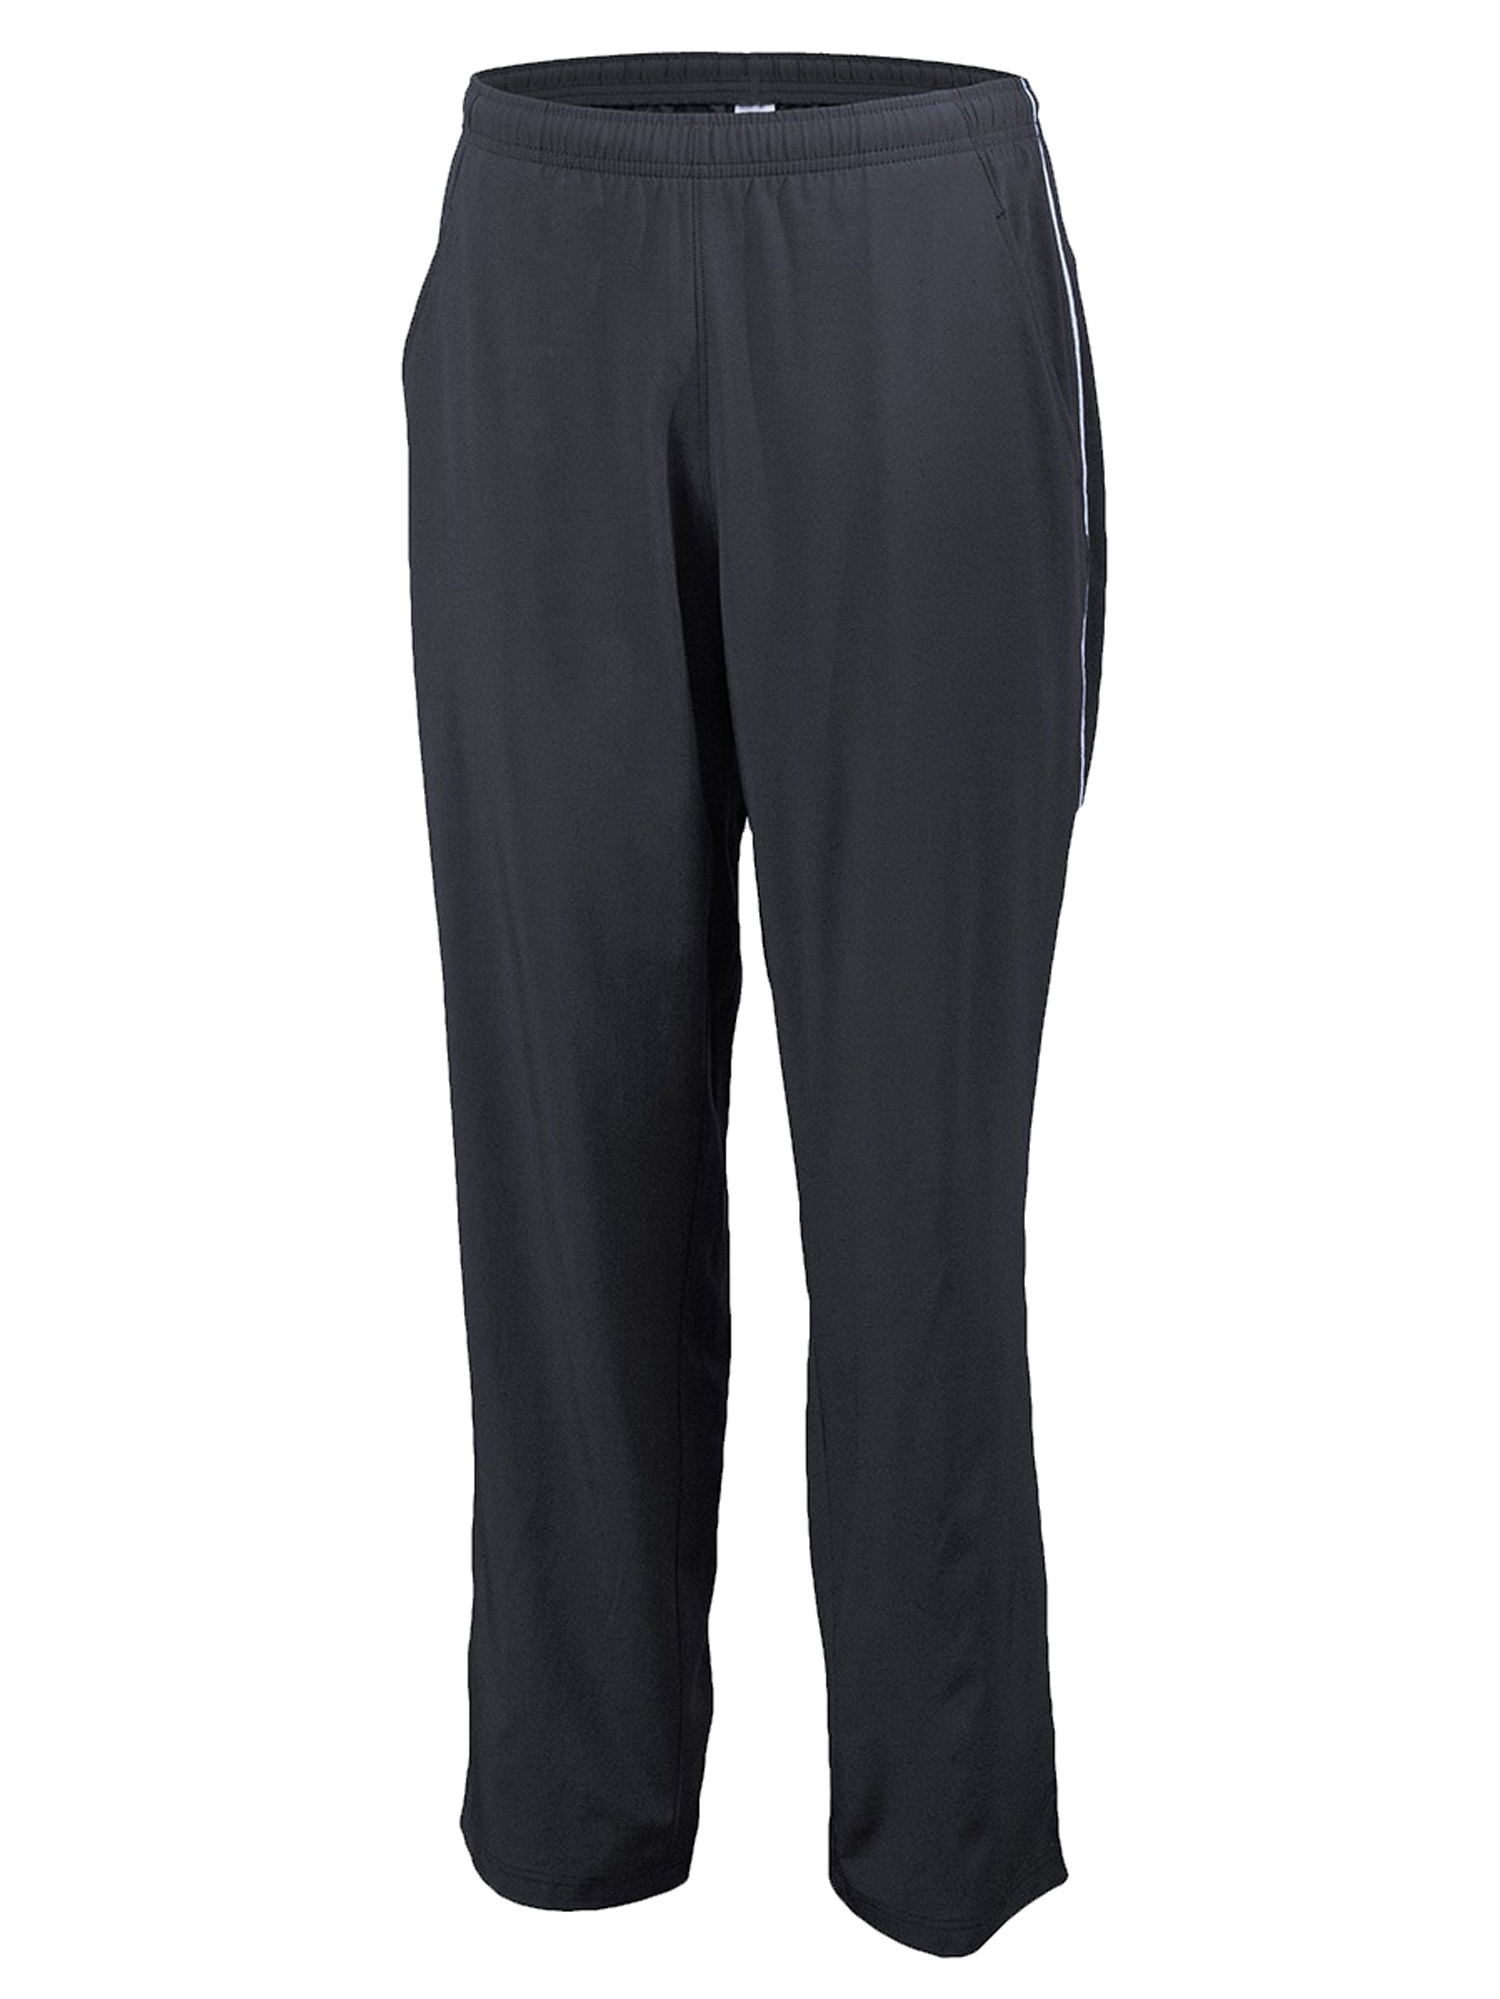 Soffe Youth Side Pocket Warm Up Pant